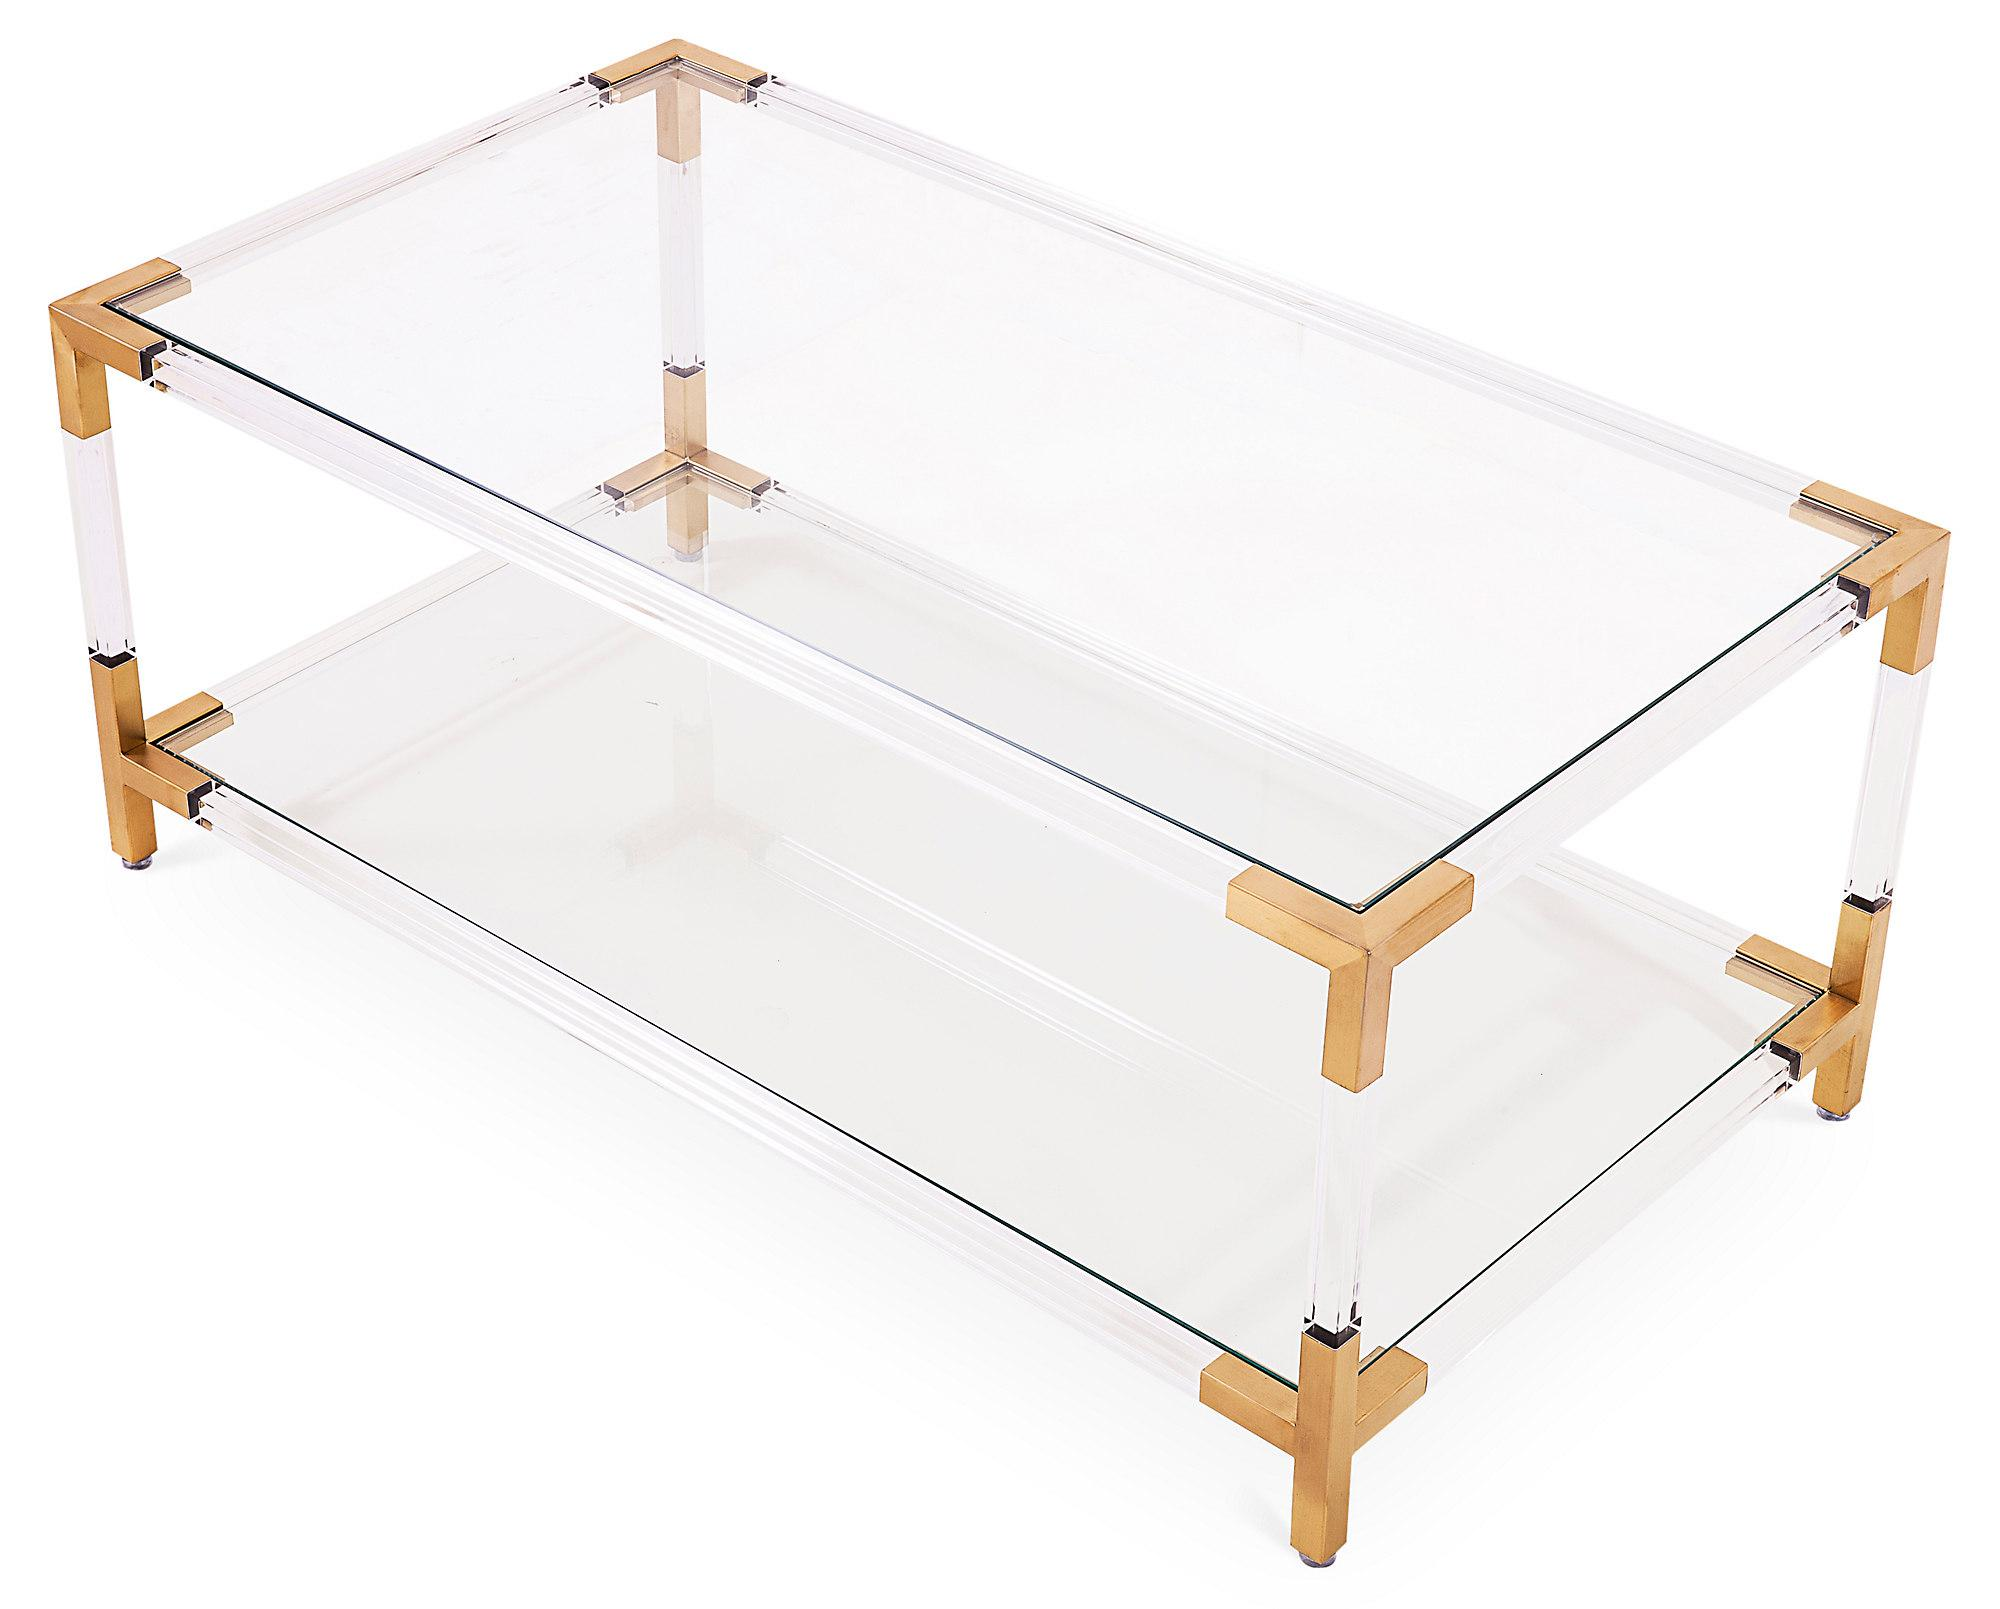 image of gold u0026 acrylic frame coffee table with glass shelves